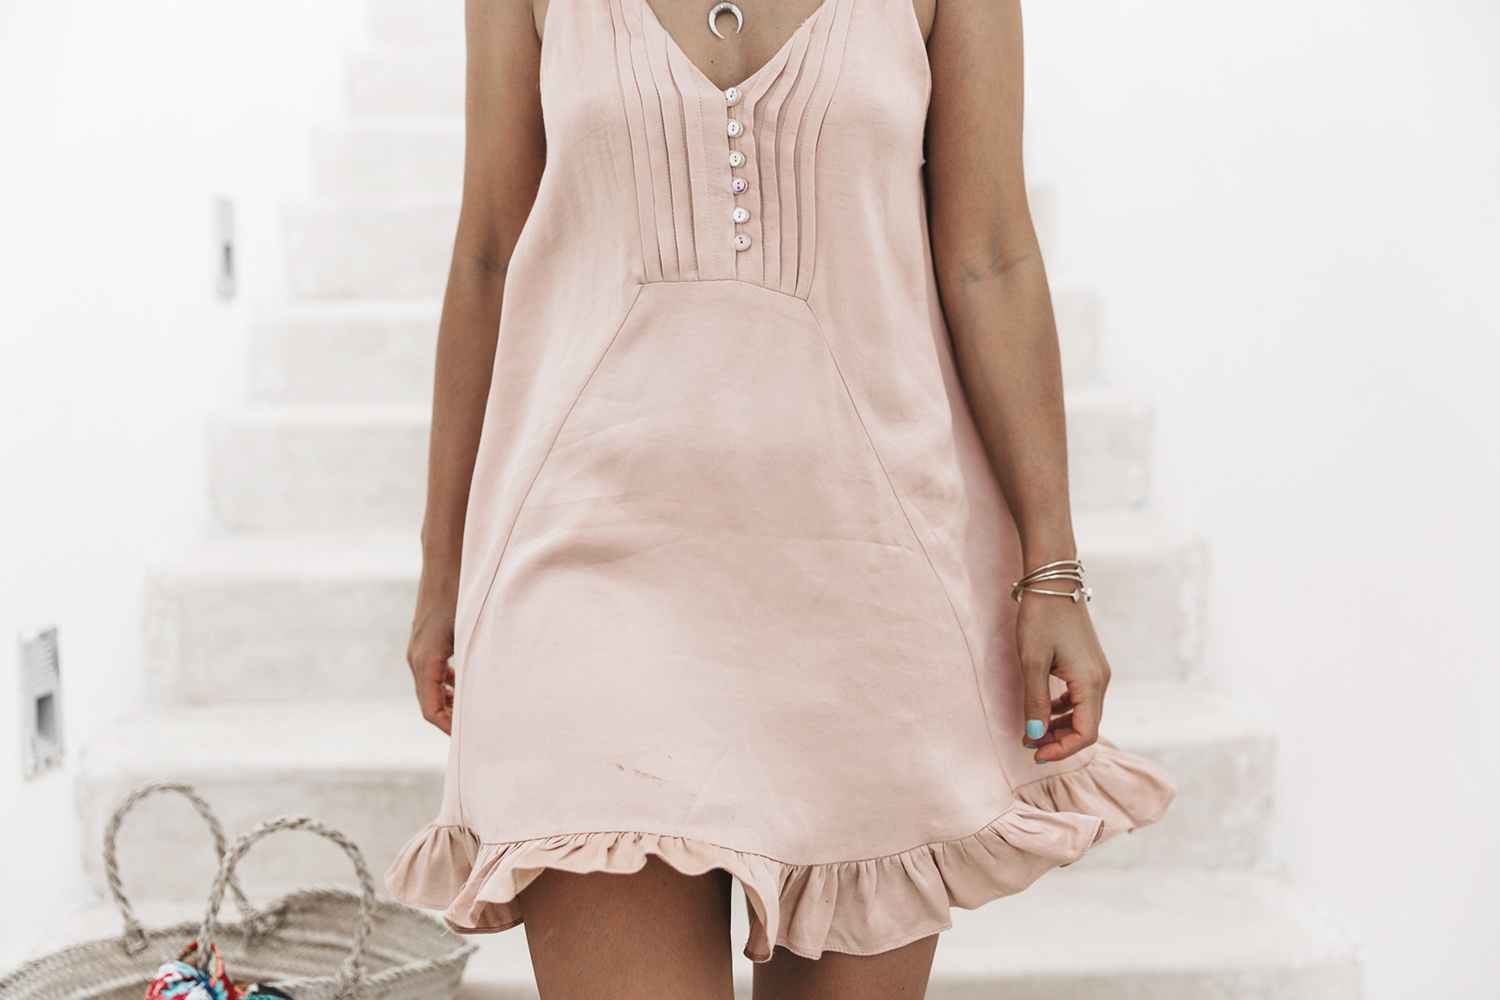 Soludos-Soludos_Escapes-Light_Pink_Dress-Knotted_Sandals-Mykonos-Greece-Collage_Vintage-Summer_Outfit-Street_Style-37